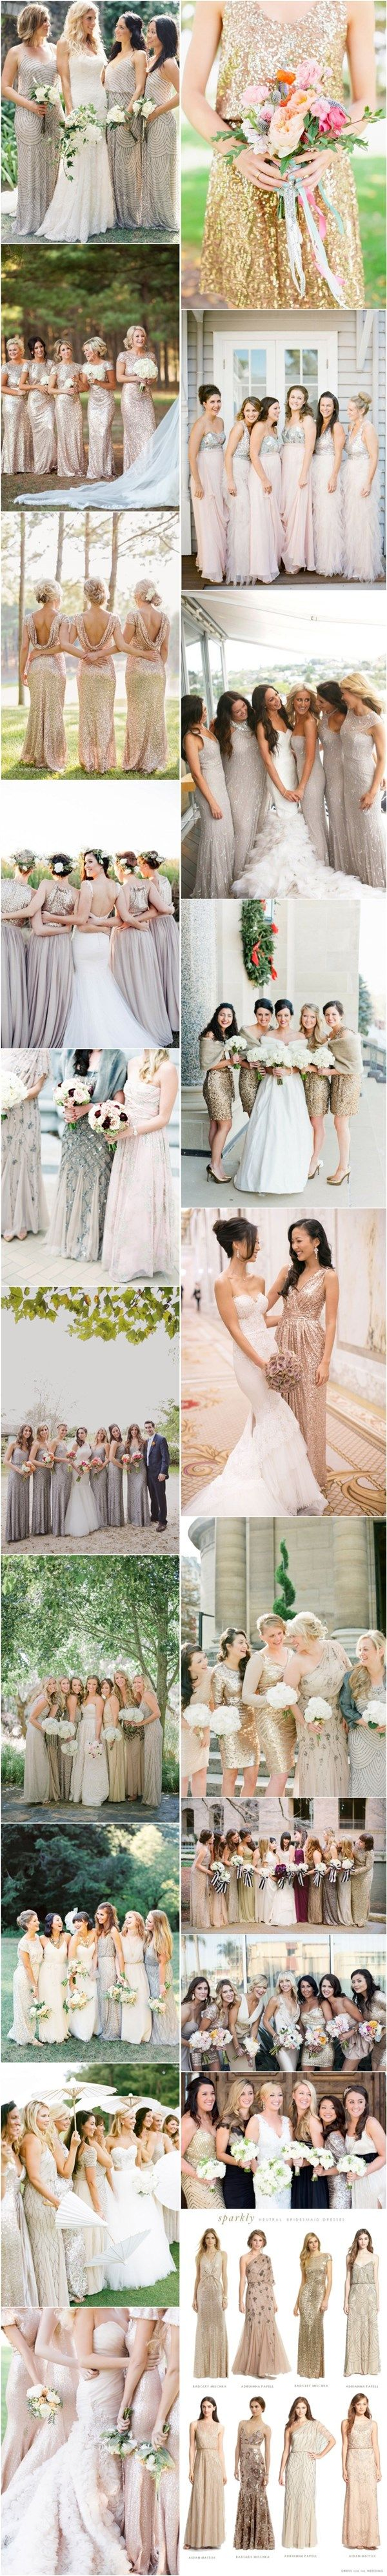 sparkly neutral gold sequined bridesmaid dresses / http://www.deerpearlflowers.com/2015-wedding-trends-sequined-metallic-bridesmaid-dresses/2/